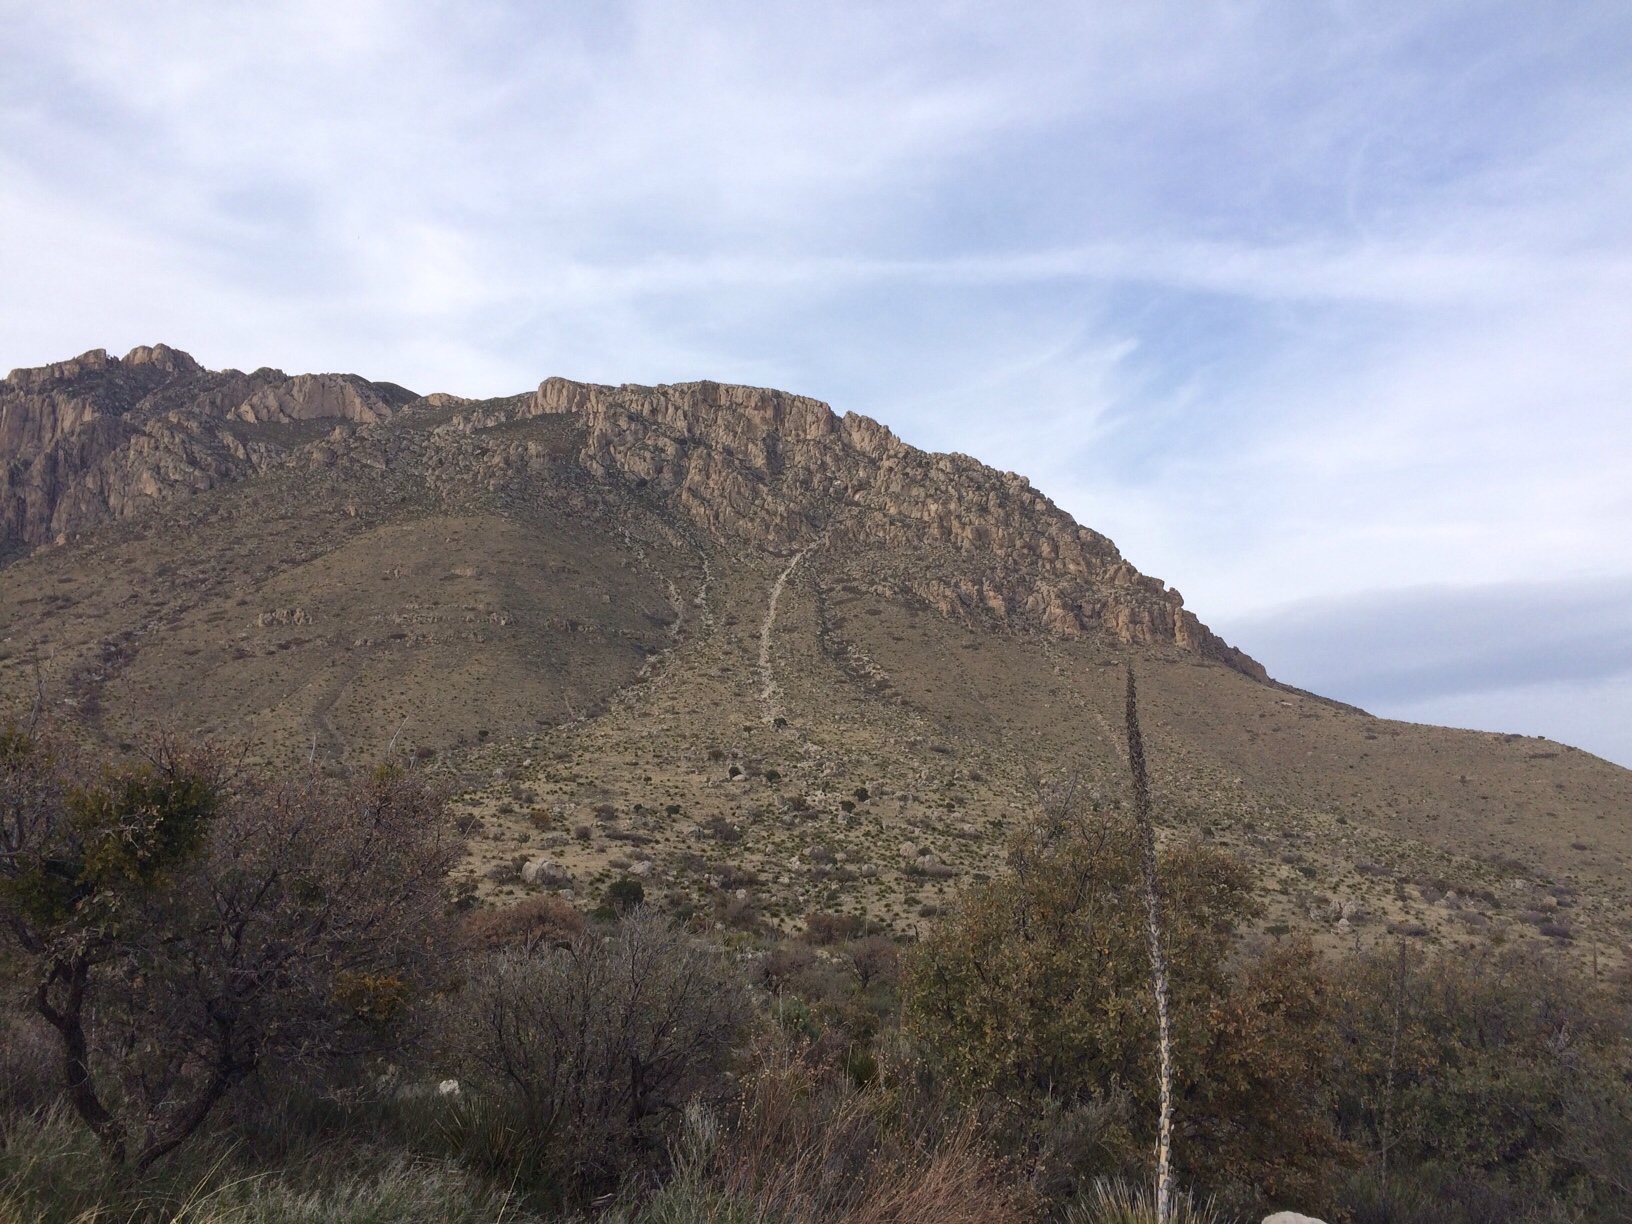 Guadalupe mountain evening view